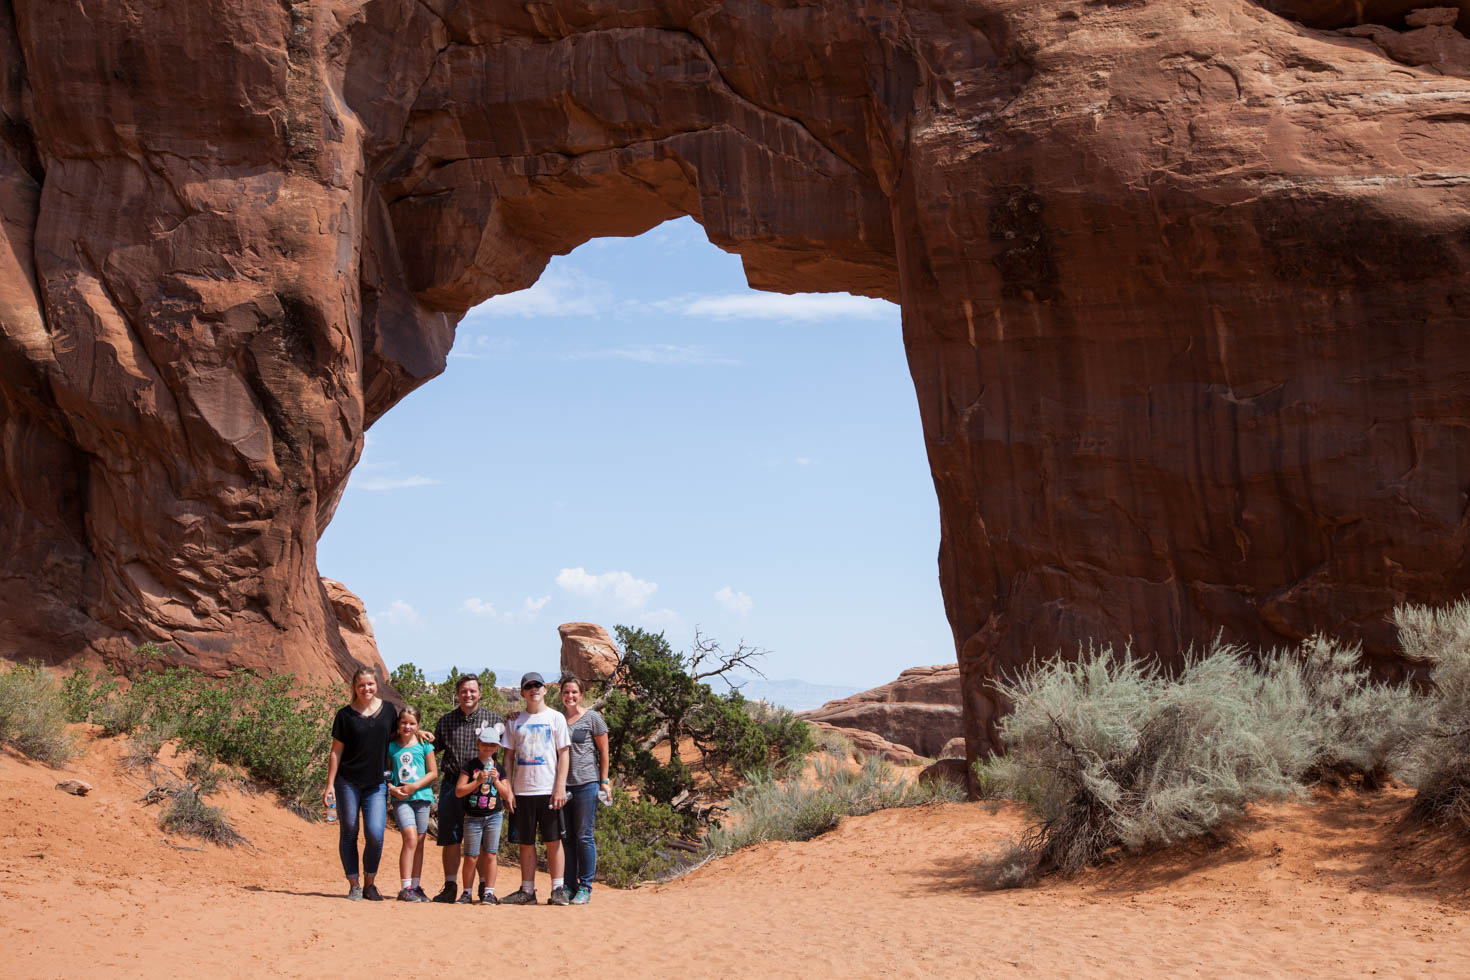 Pine Tree Arch, Arches National Park, Moab, Utah #vezzaniphotography